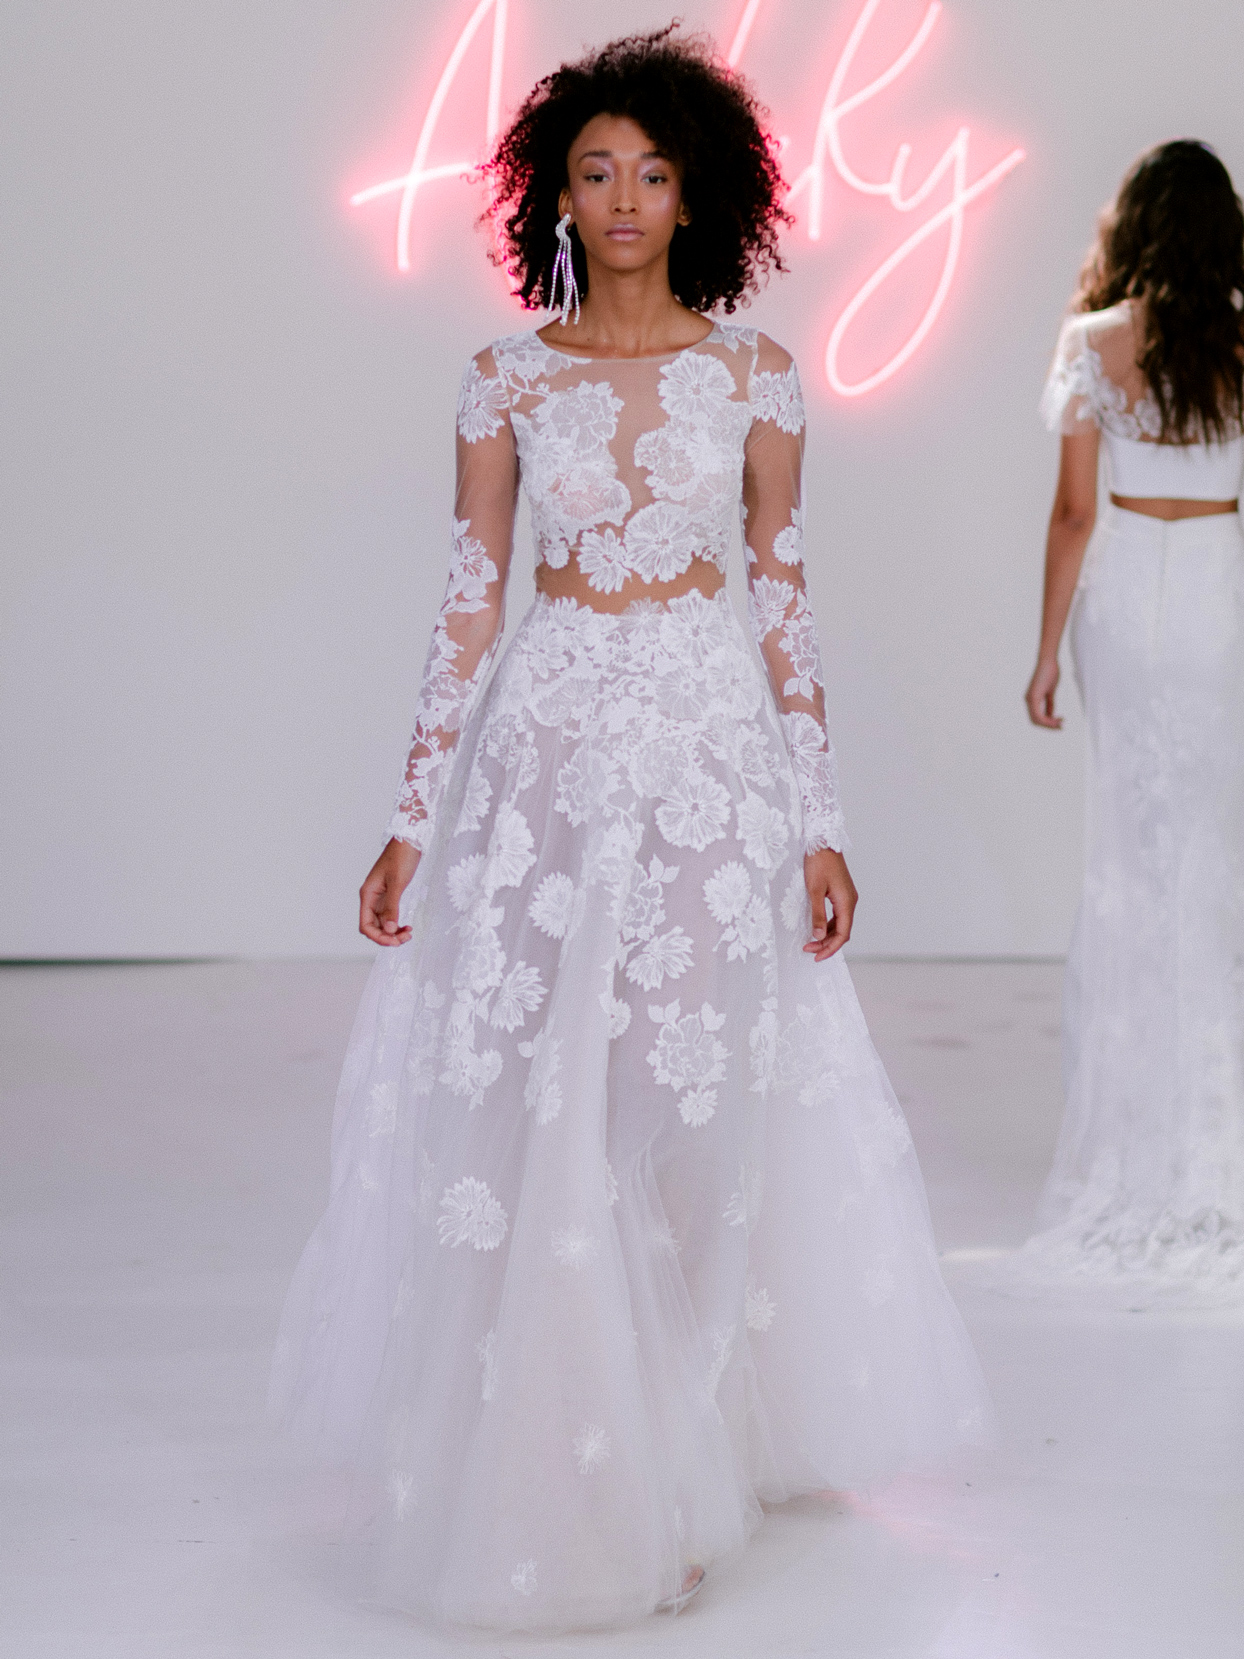 Rime Arodaky X The Mews Bridal sheer lace long sleeve crew neck wedding dress fall 2020